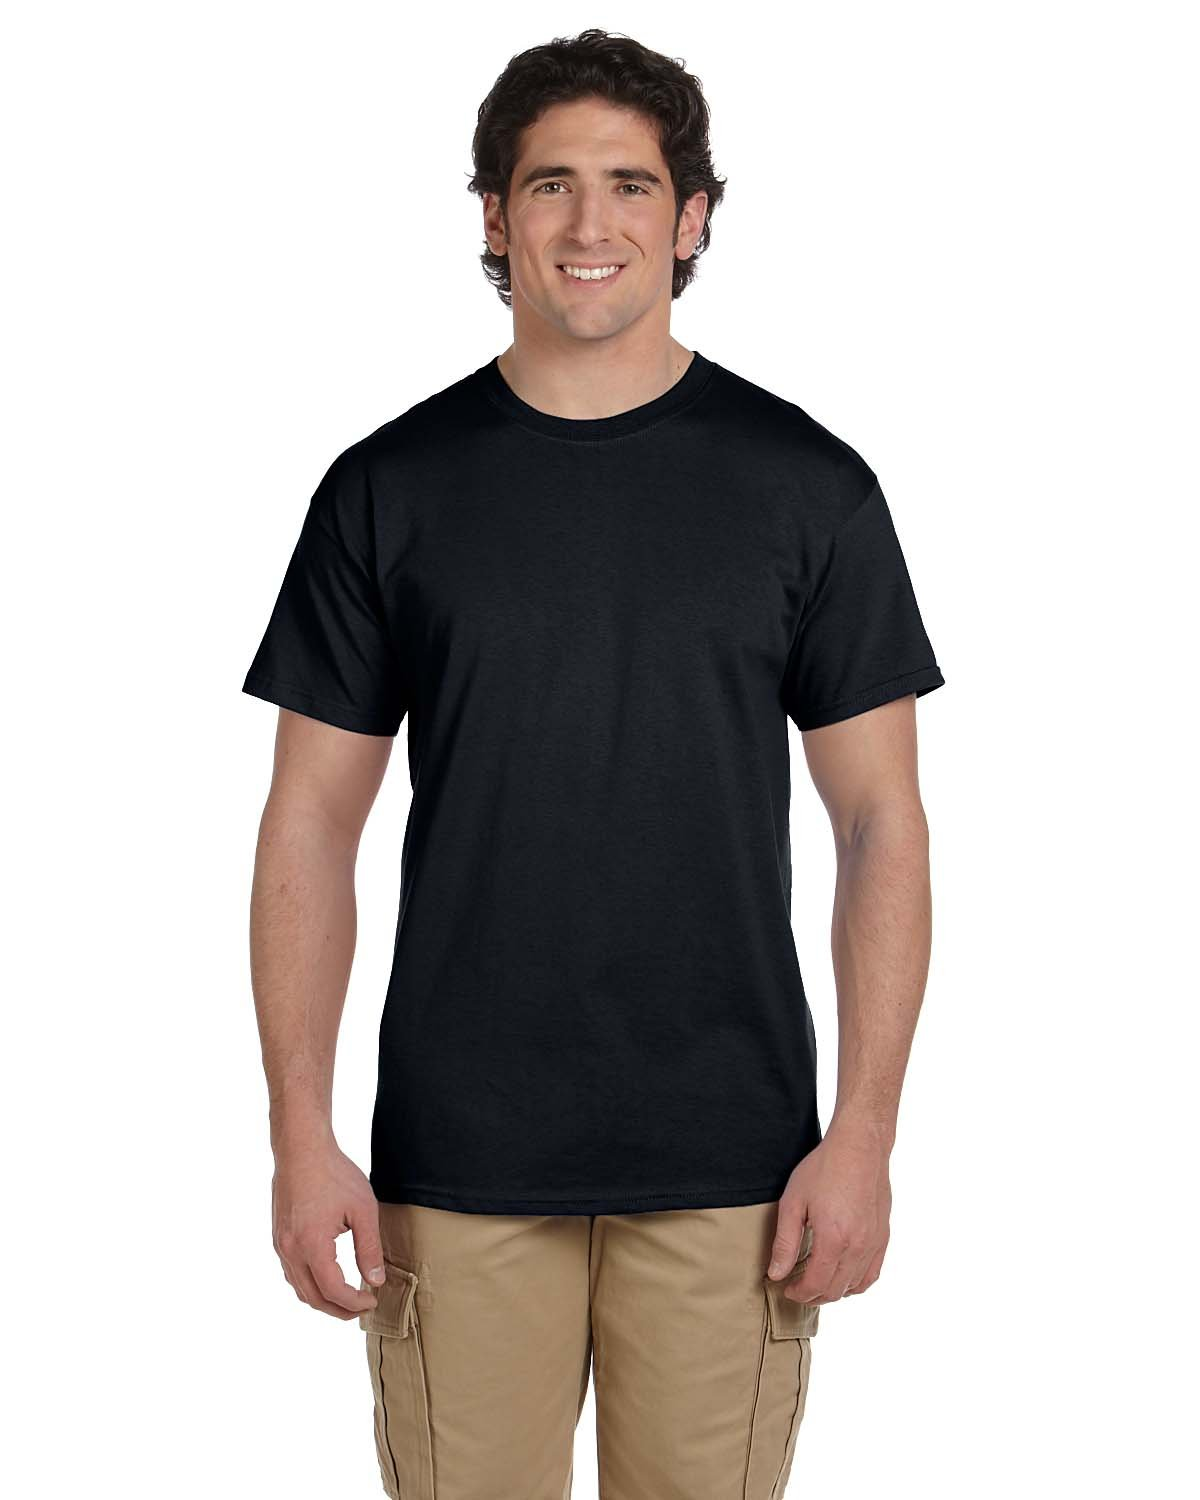 700ce902516 Front Back Side · Gallery View Download HiRes Design Studio. G200T Gildan  Adult Ultra Cotton® Tall 6 oz. T-Shirt. Touch to zoom